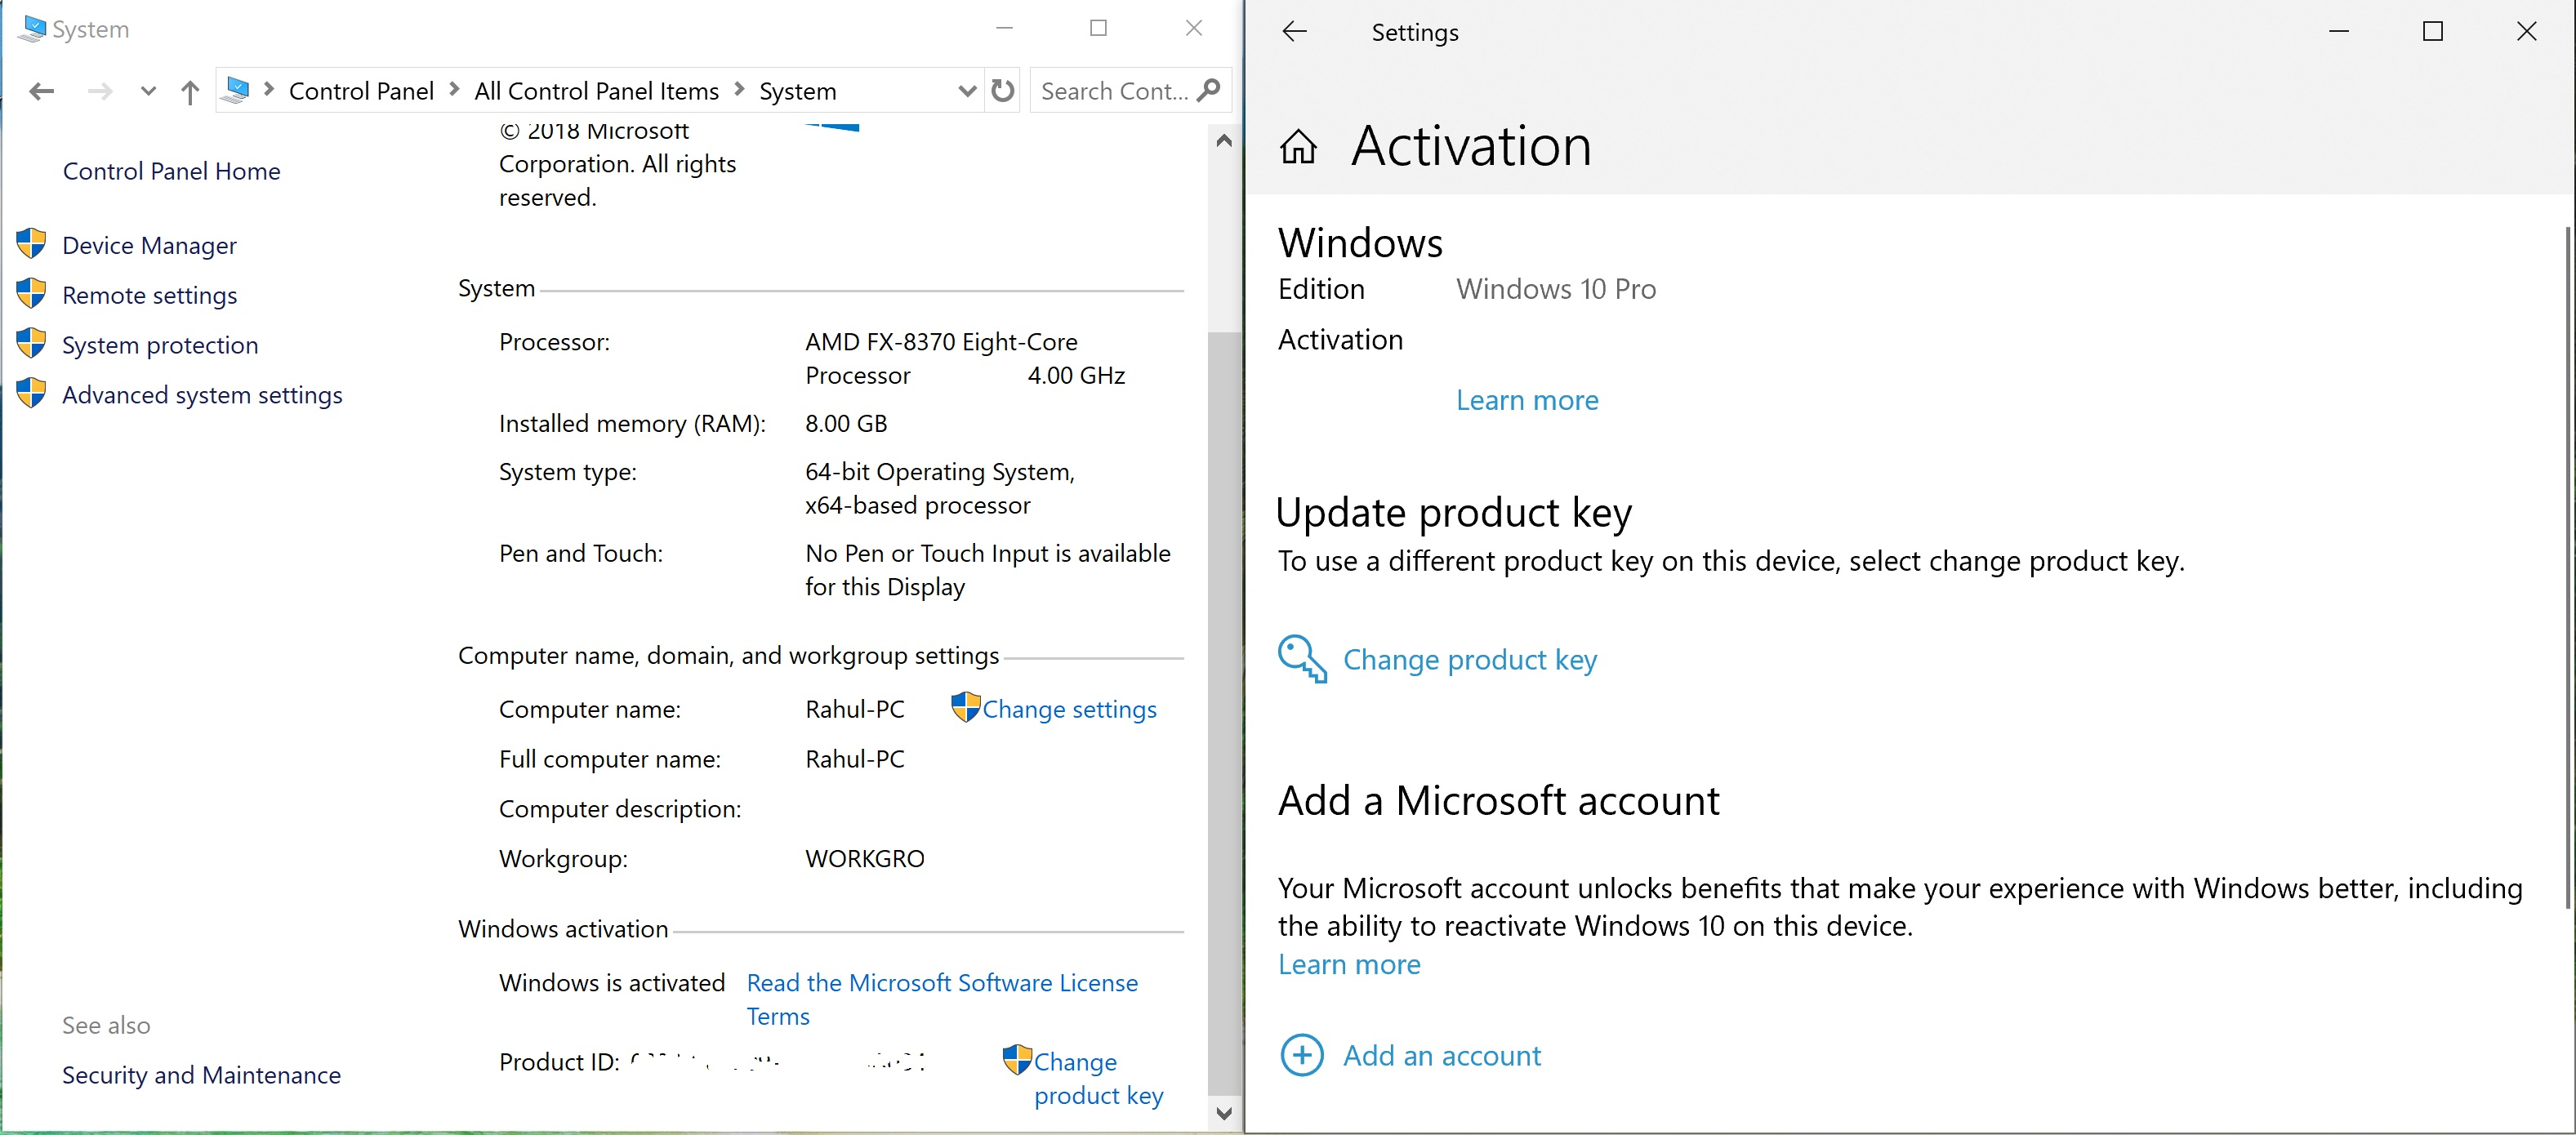 My Windows 10 Pro Retail license key successfully activated